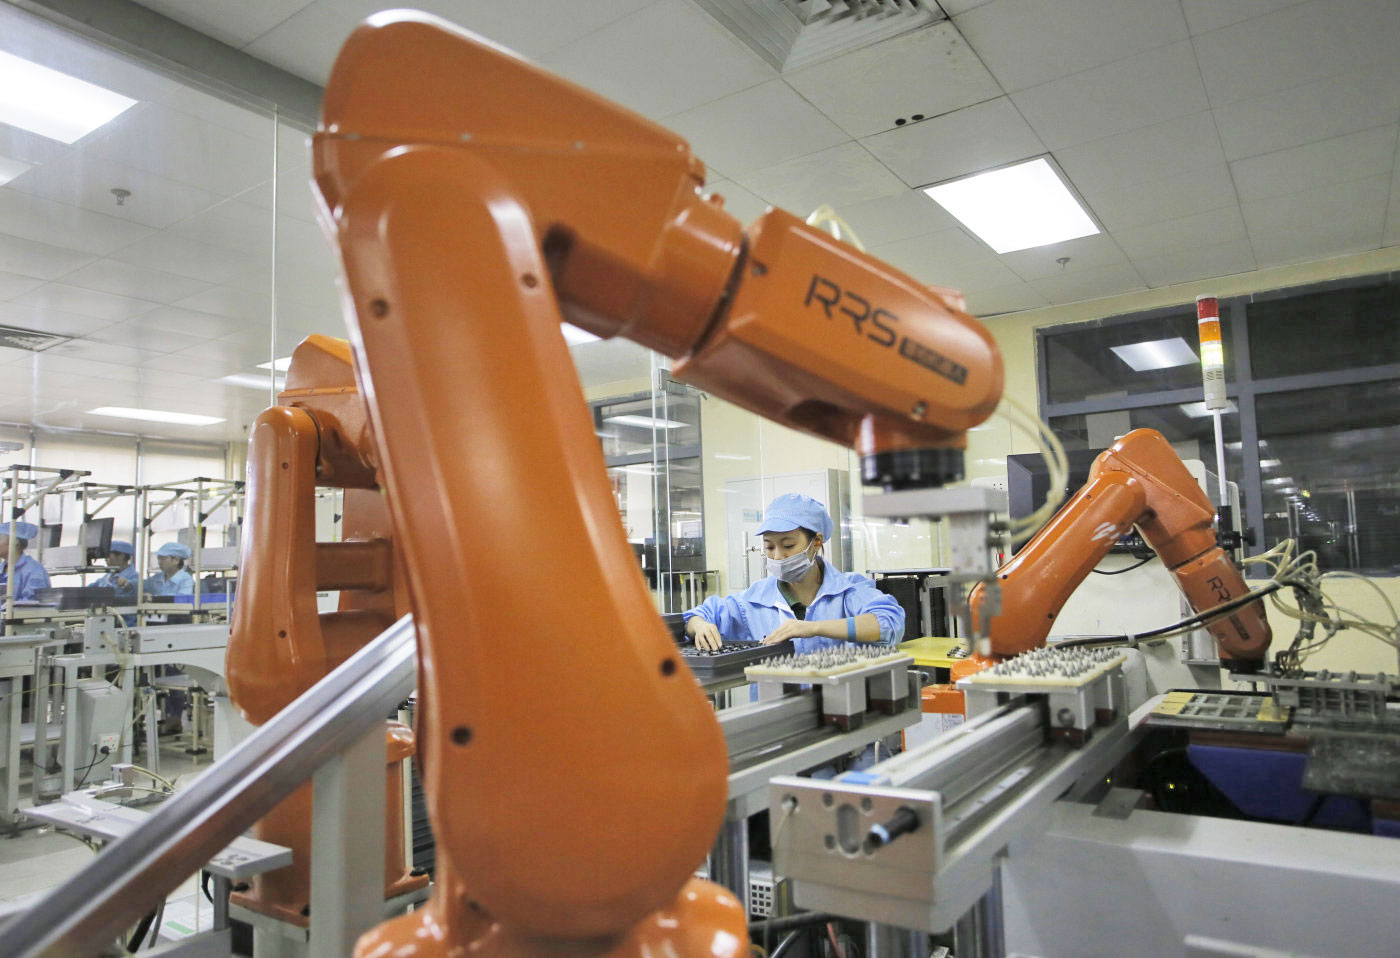 foxconn robots for automated manufacturing 600